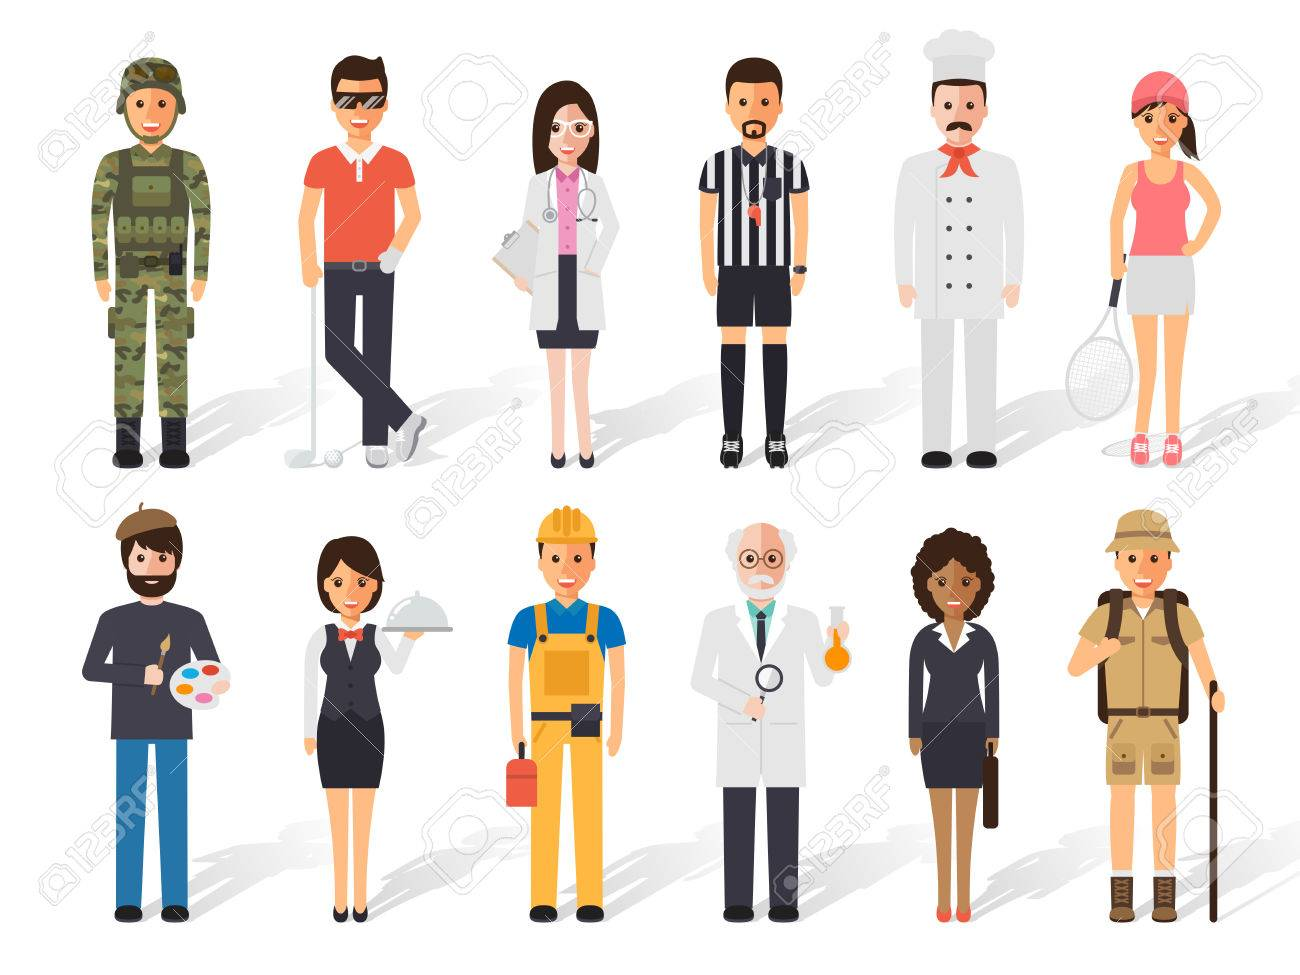 set of diverse occupation profession people flat design people royalty free cliparts vectors and stock illustration image 65185293 set of diverse occupation profession people flat design people